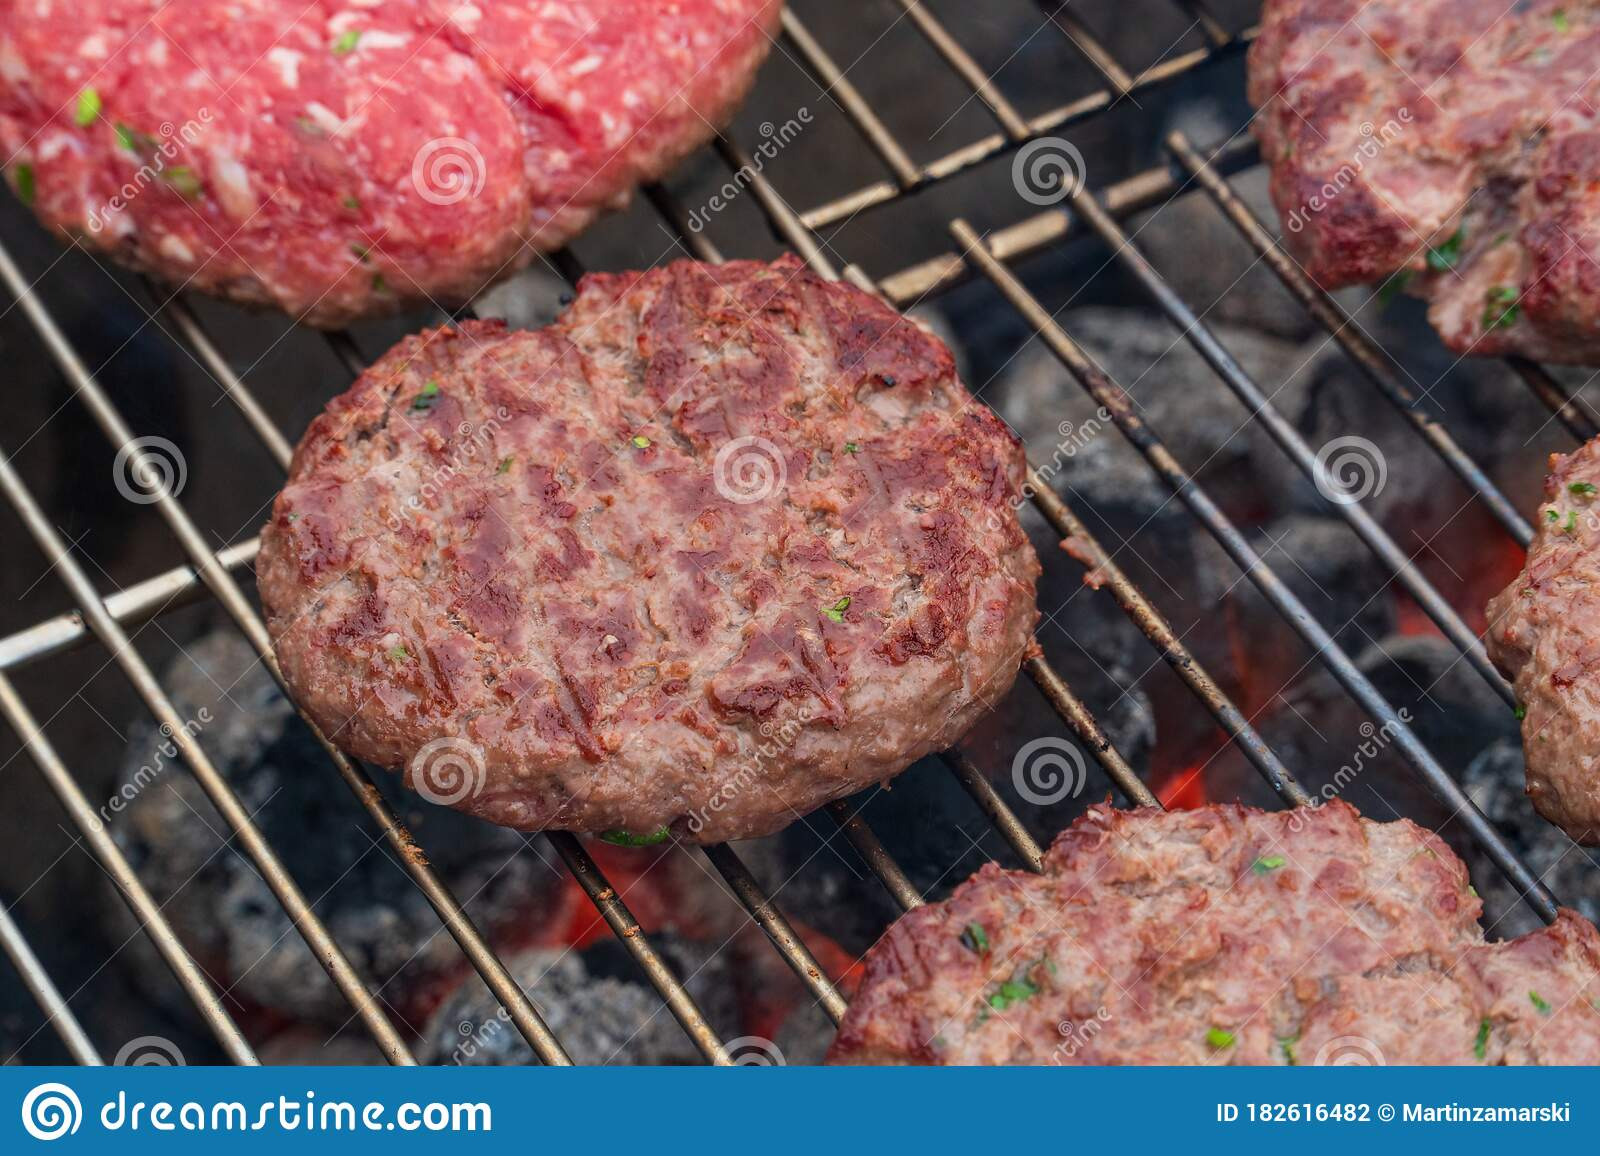 Bbq Grilled Burgers Patties On The Hot Flaming Charcoal Grill Top View Cookout Food Good Snack For Outdoor Party Or Picnic Stock Photo Image Of Grilled Grilling 182616482